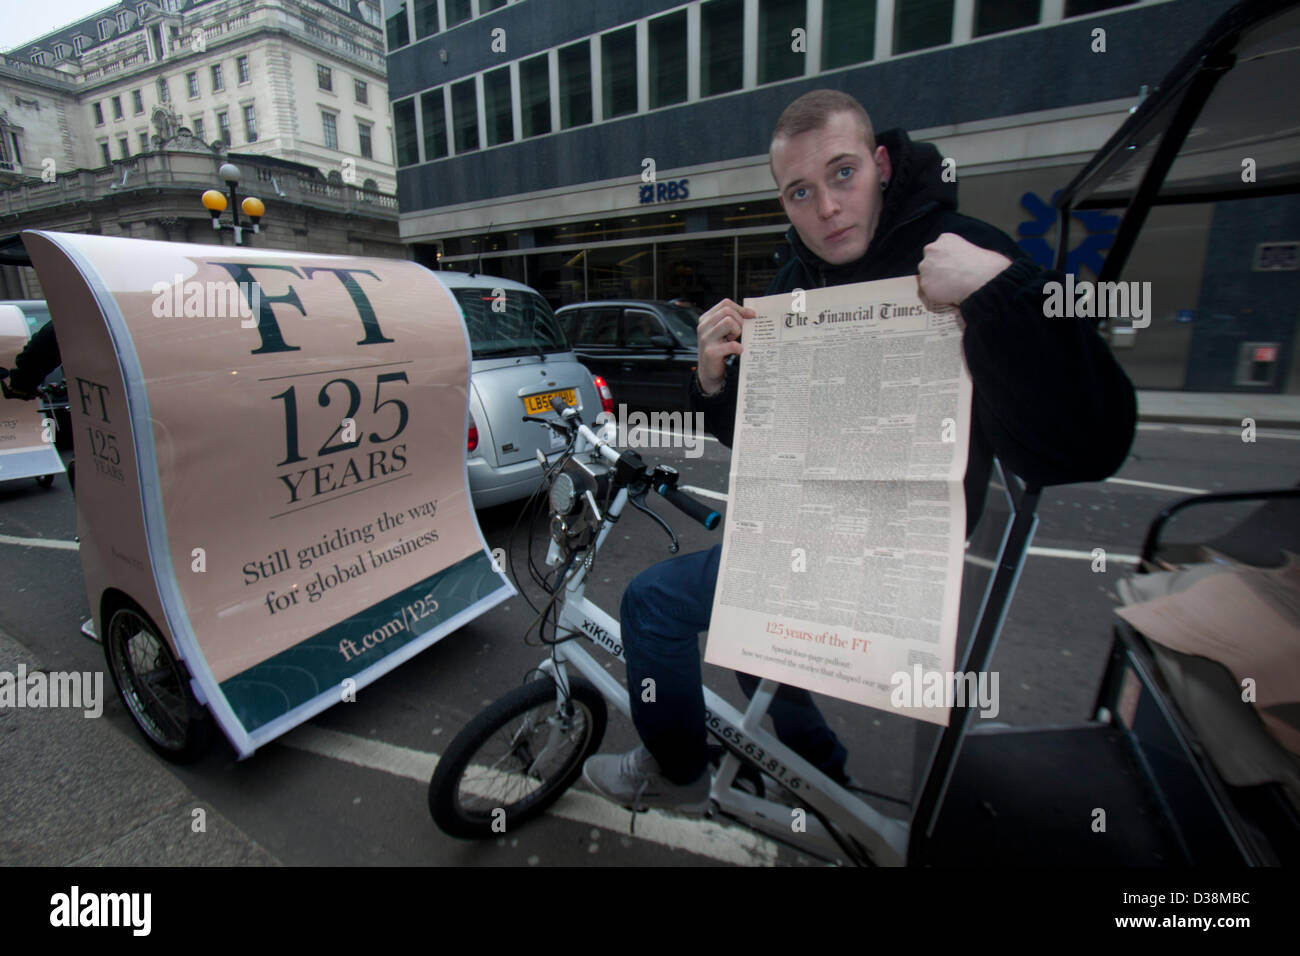 London, UK. 13th February 2013. A Newspaper vendor on  a rickshaw holds a copy of the first edition of the Financial - Stock Image